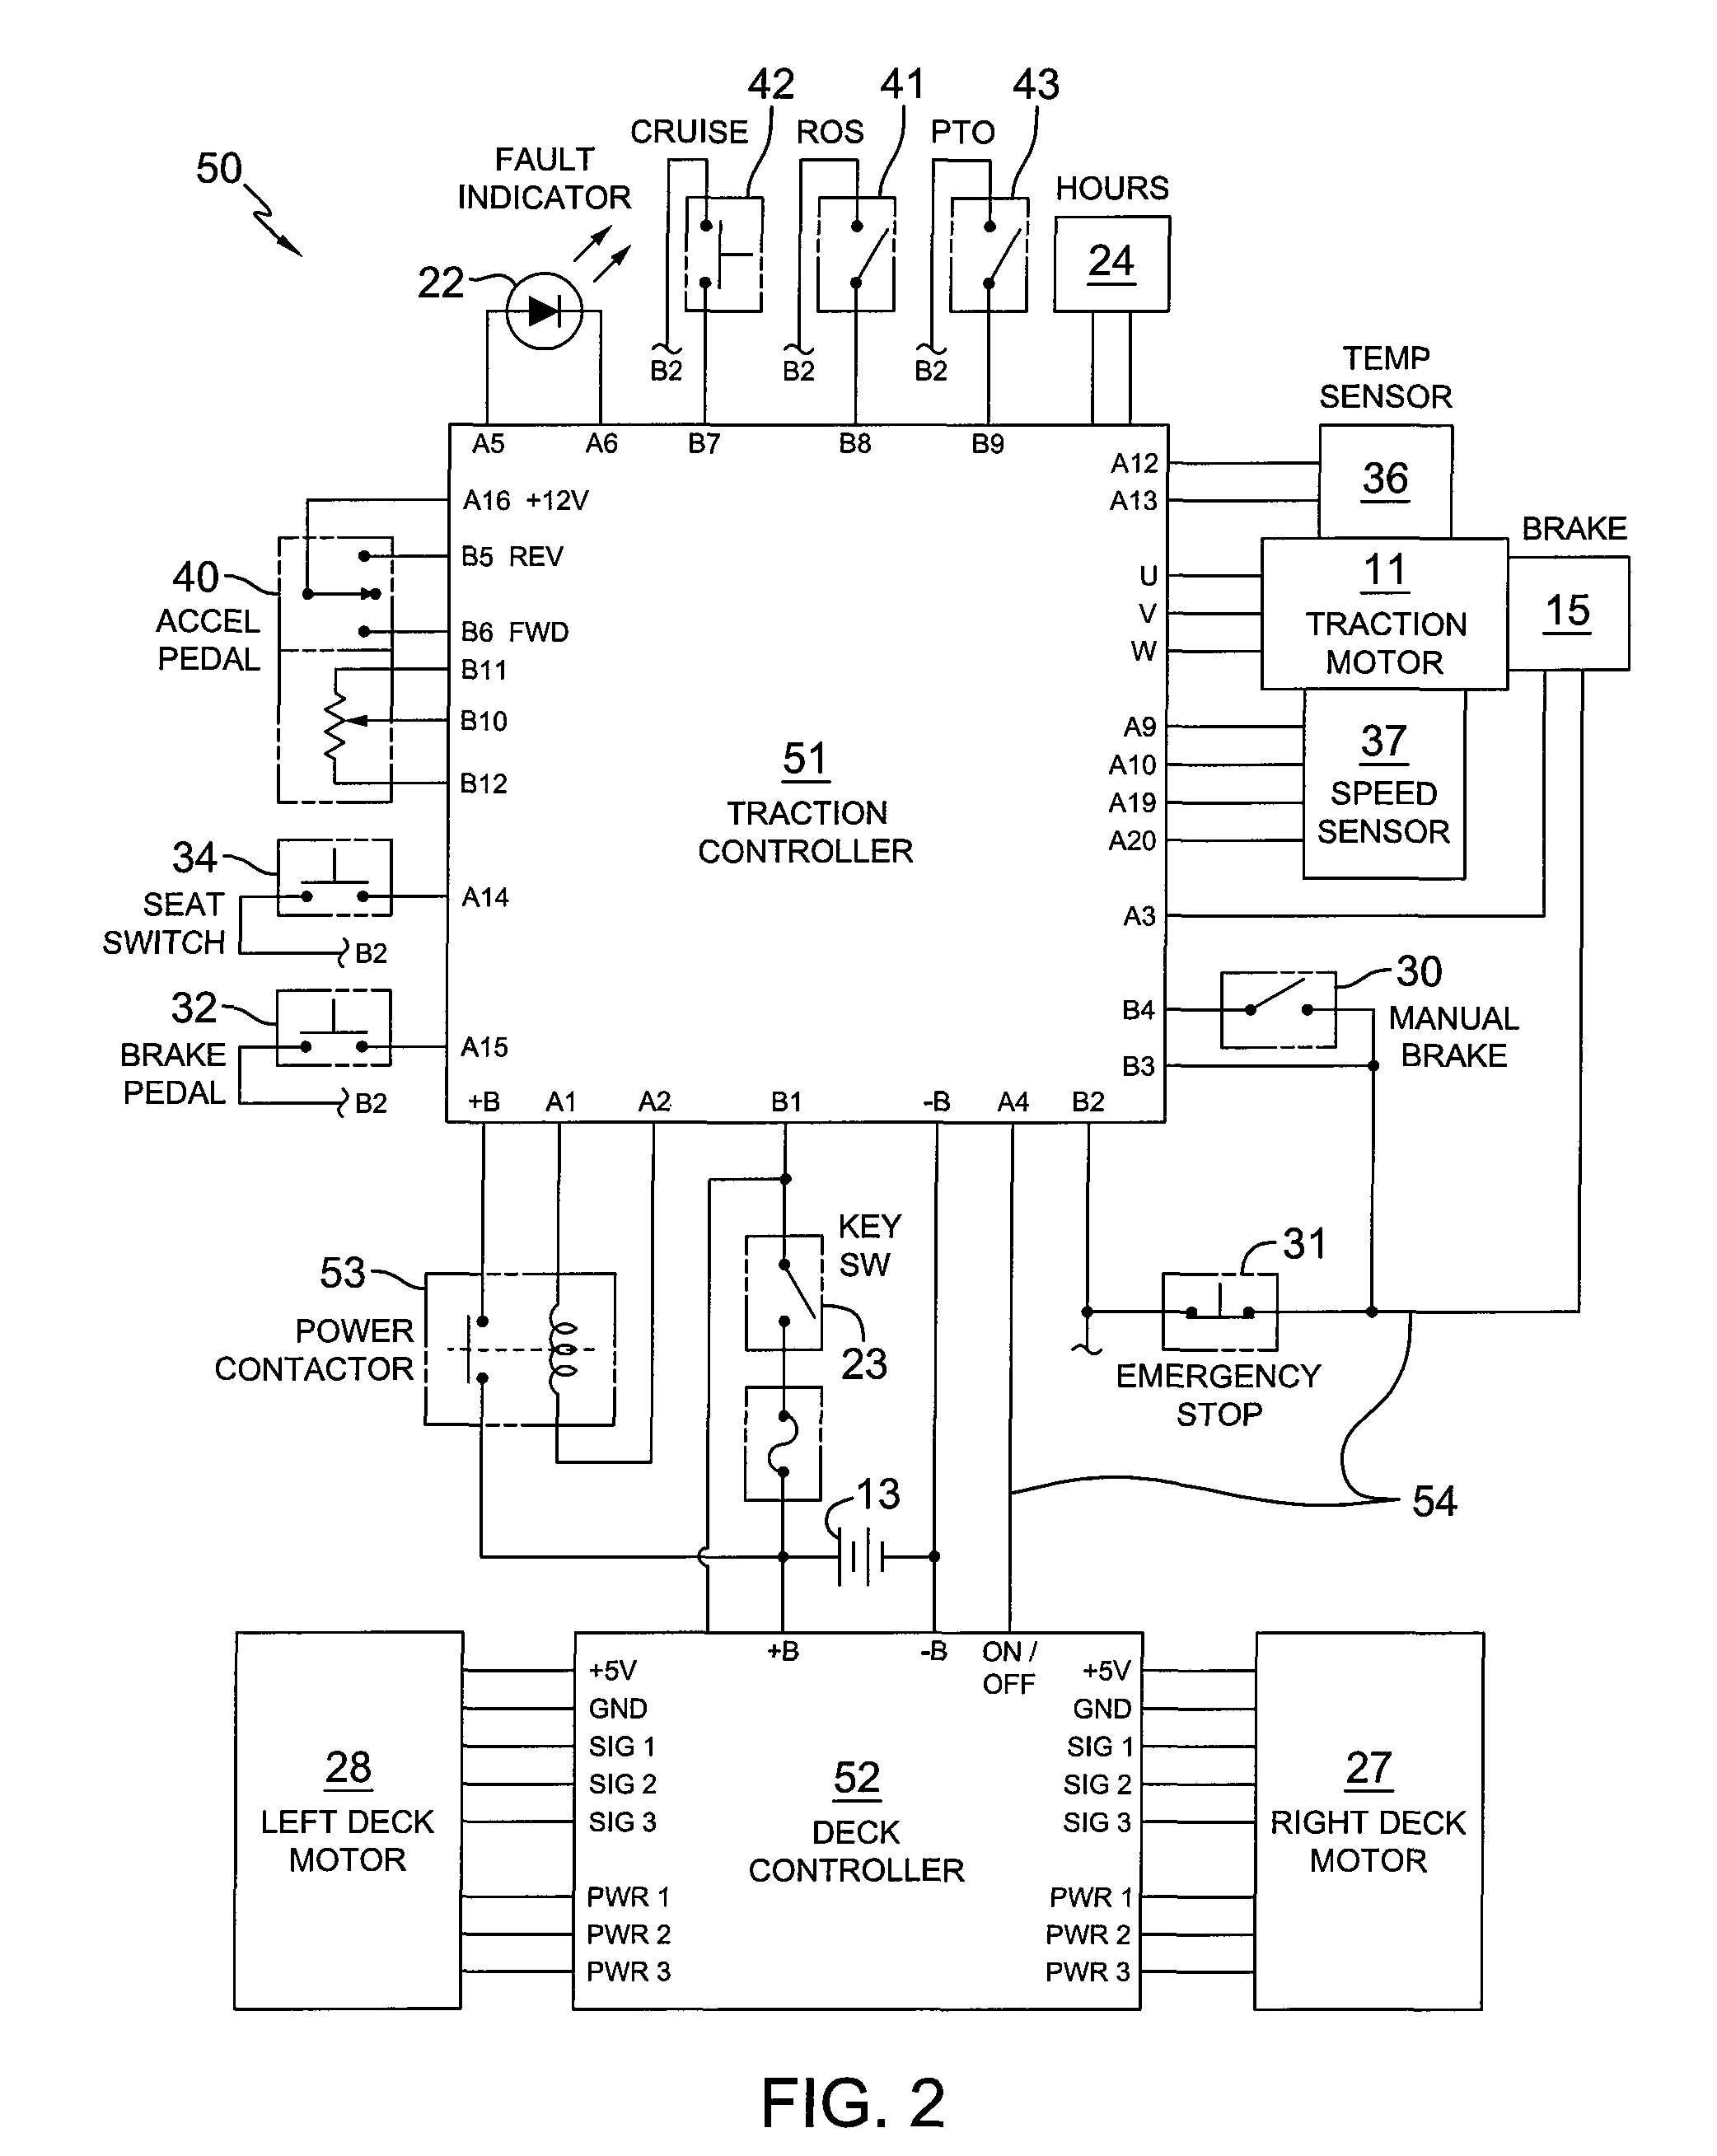 Wiring Diagram For Toro Zero Turn Mower Model 74363 Trusted Wiring Toro  Tractor Wiring Diagram Toro Zero Turn Mower Wiring Diagram